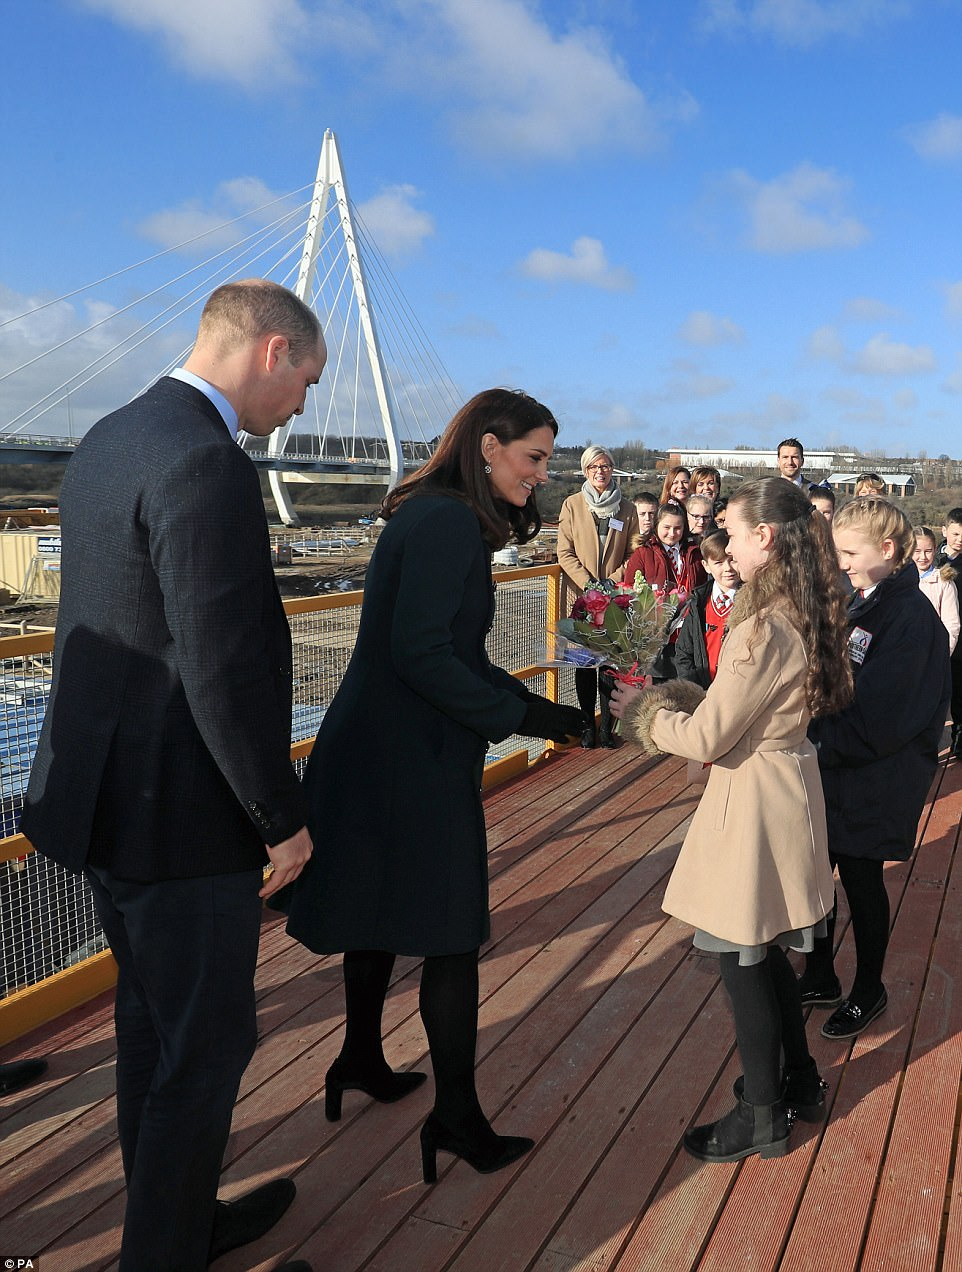 In the second part of their visit the Duke and Duchess travelled to seea new bridge that Sunderland hopes will help with regeneration in the area